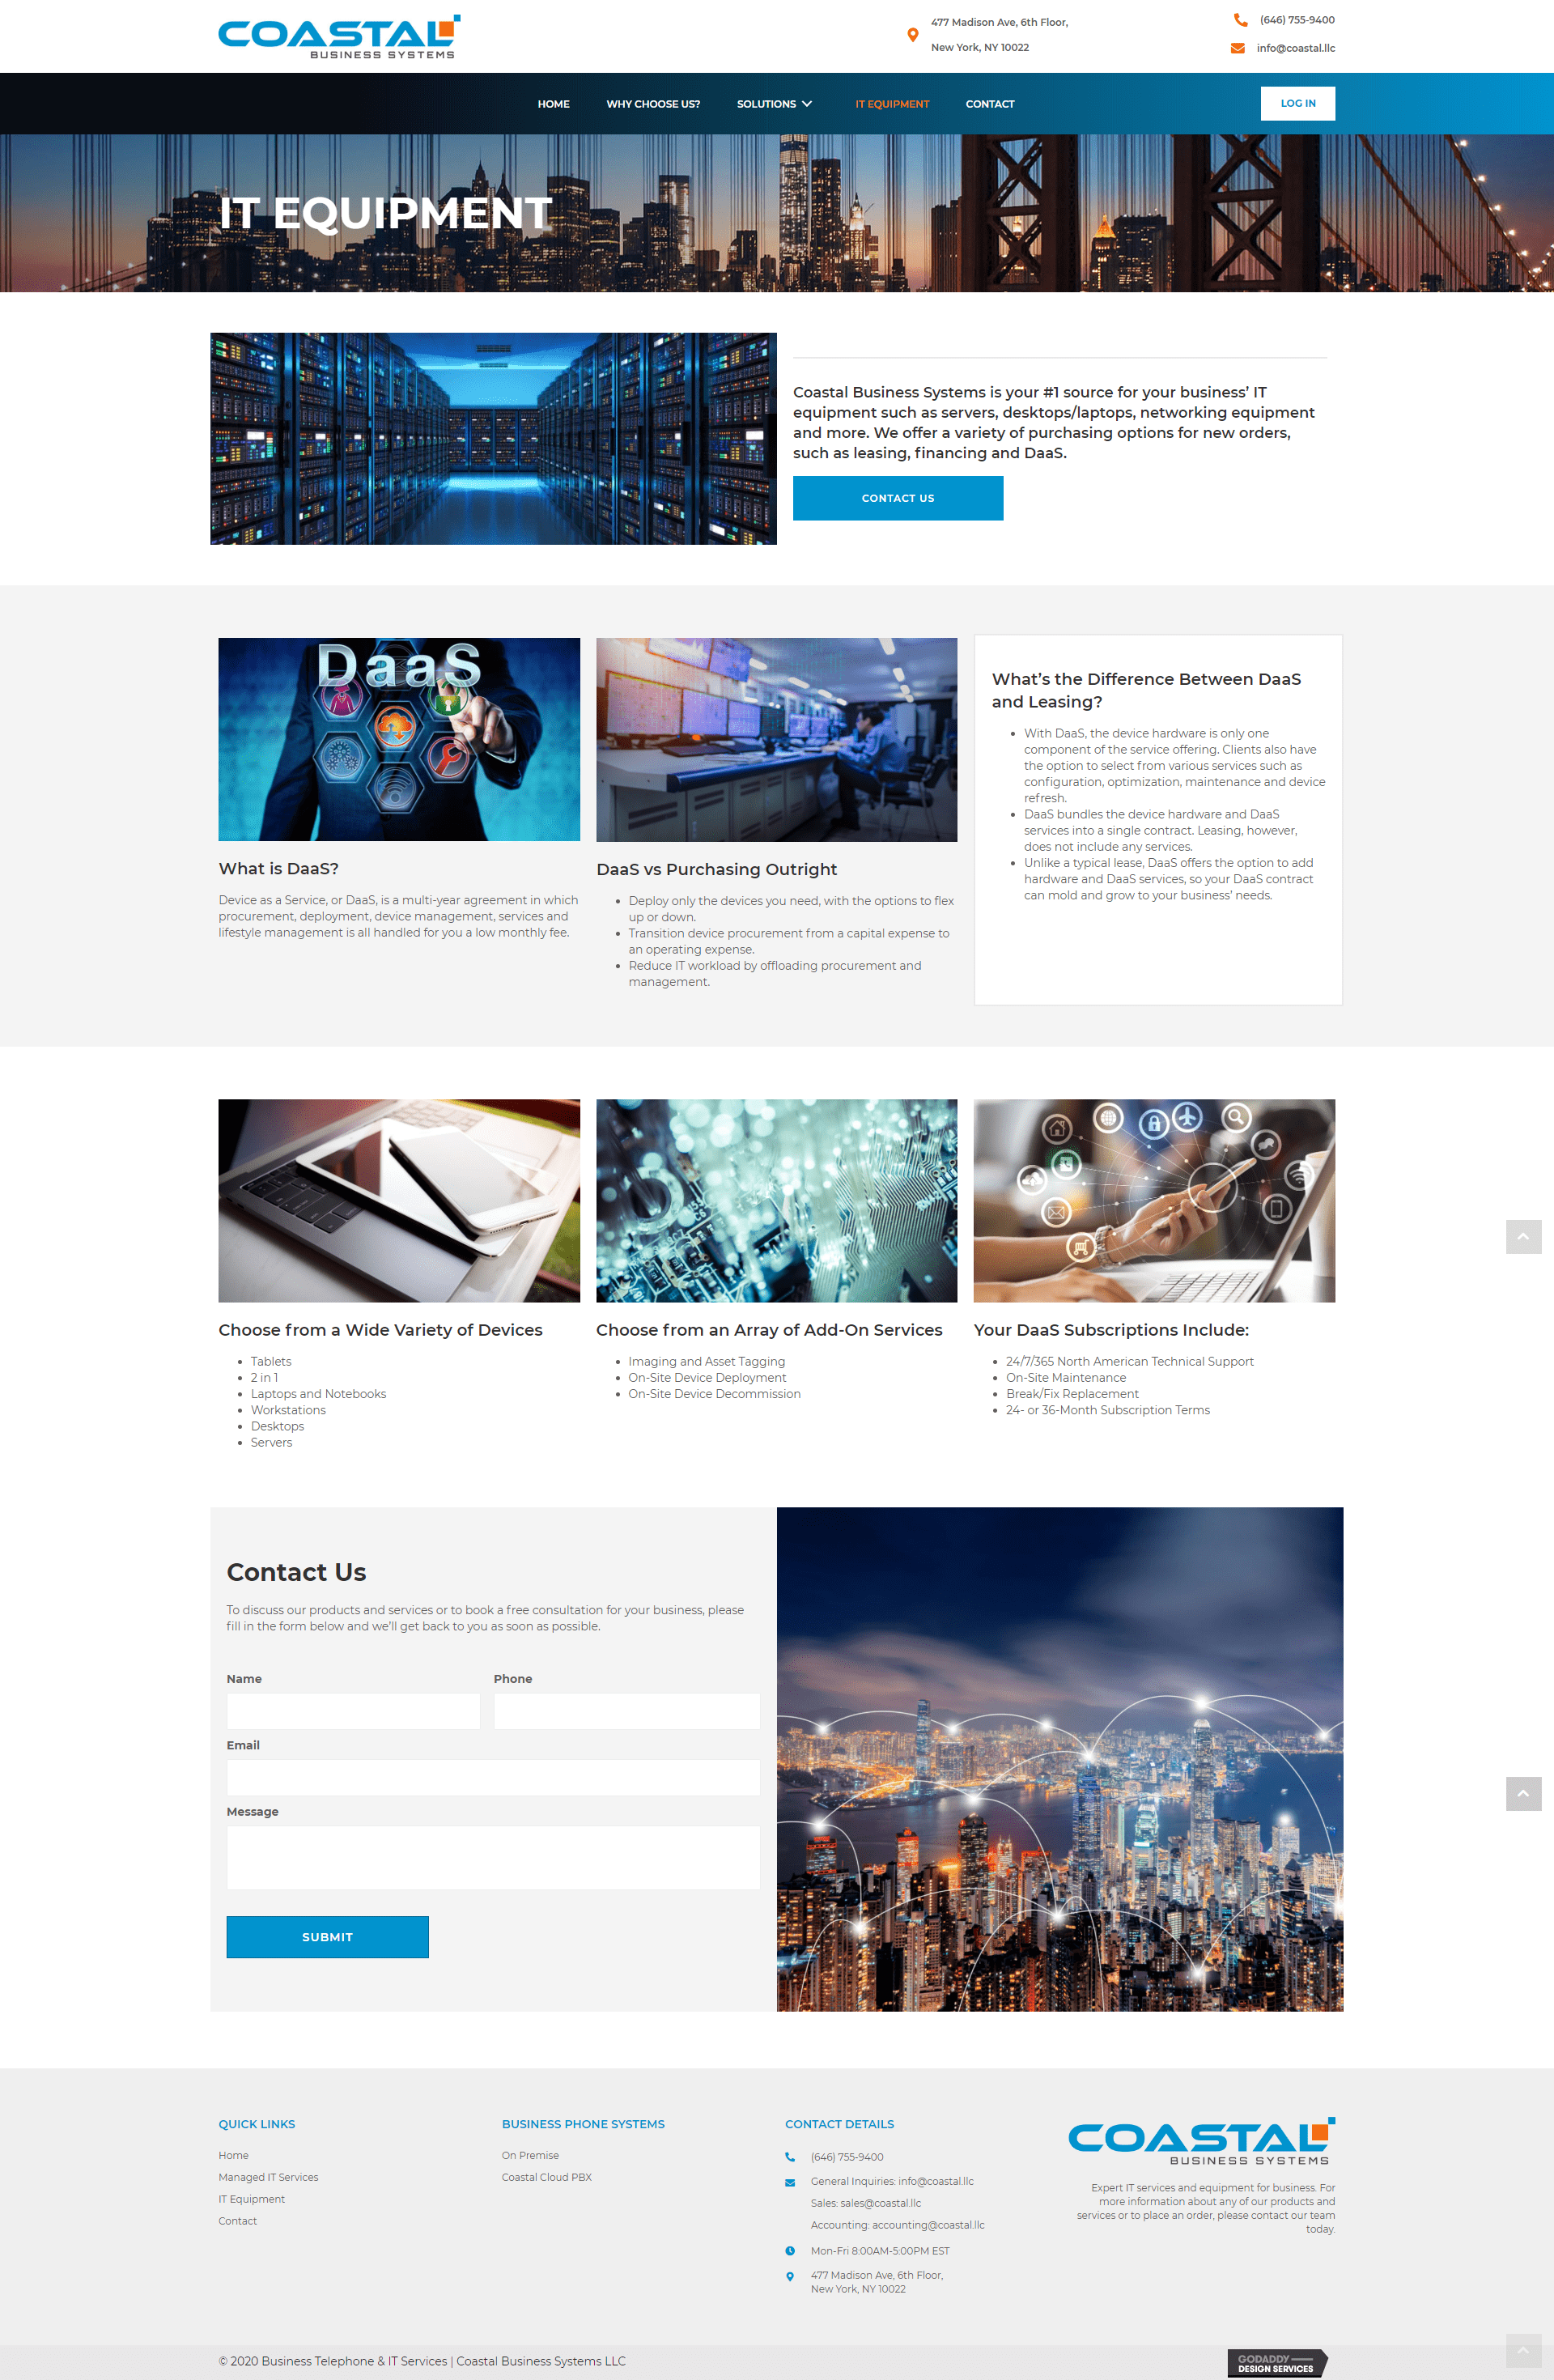 Coastal Business Systems It Equipment Page